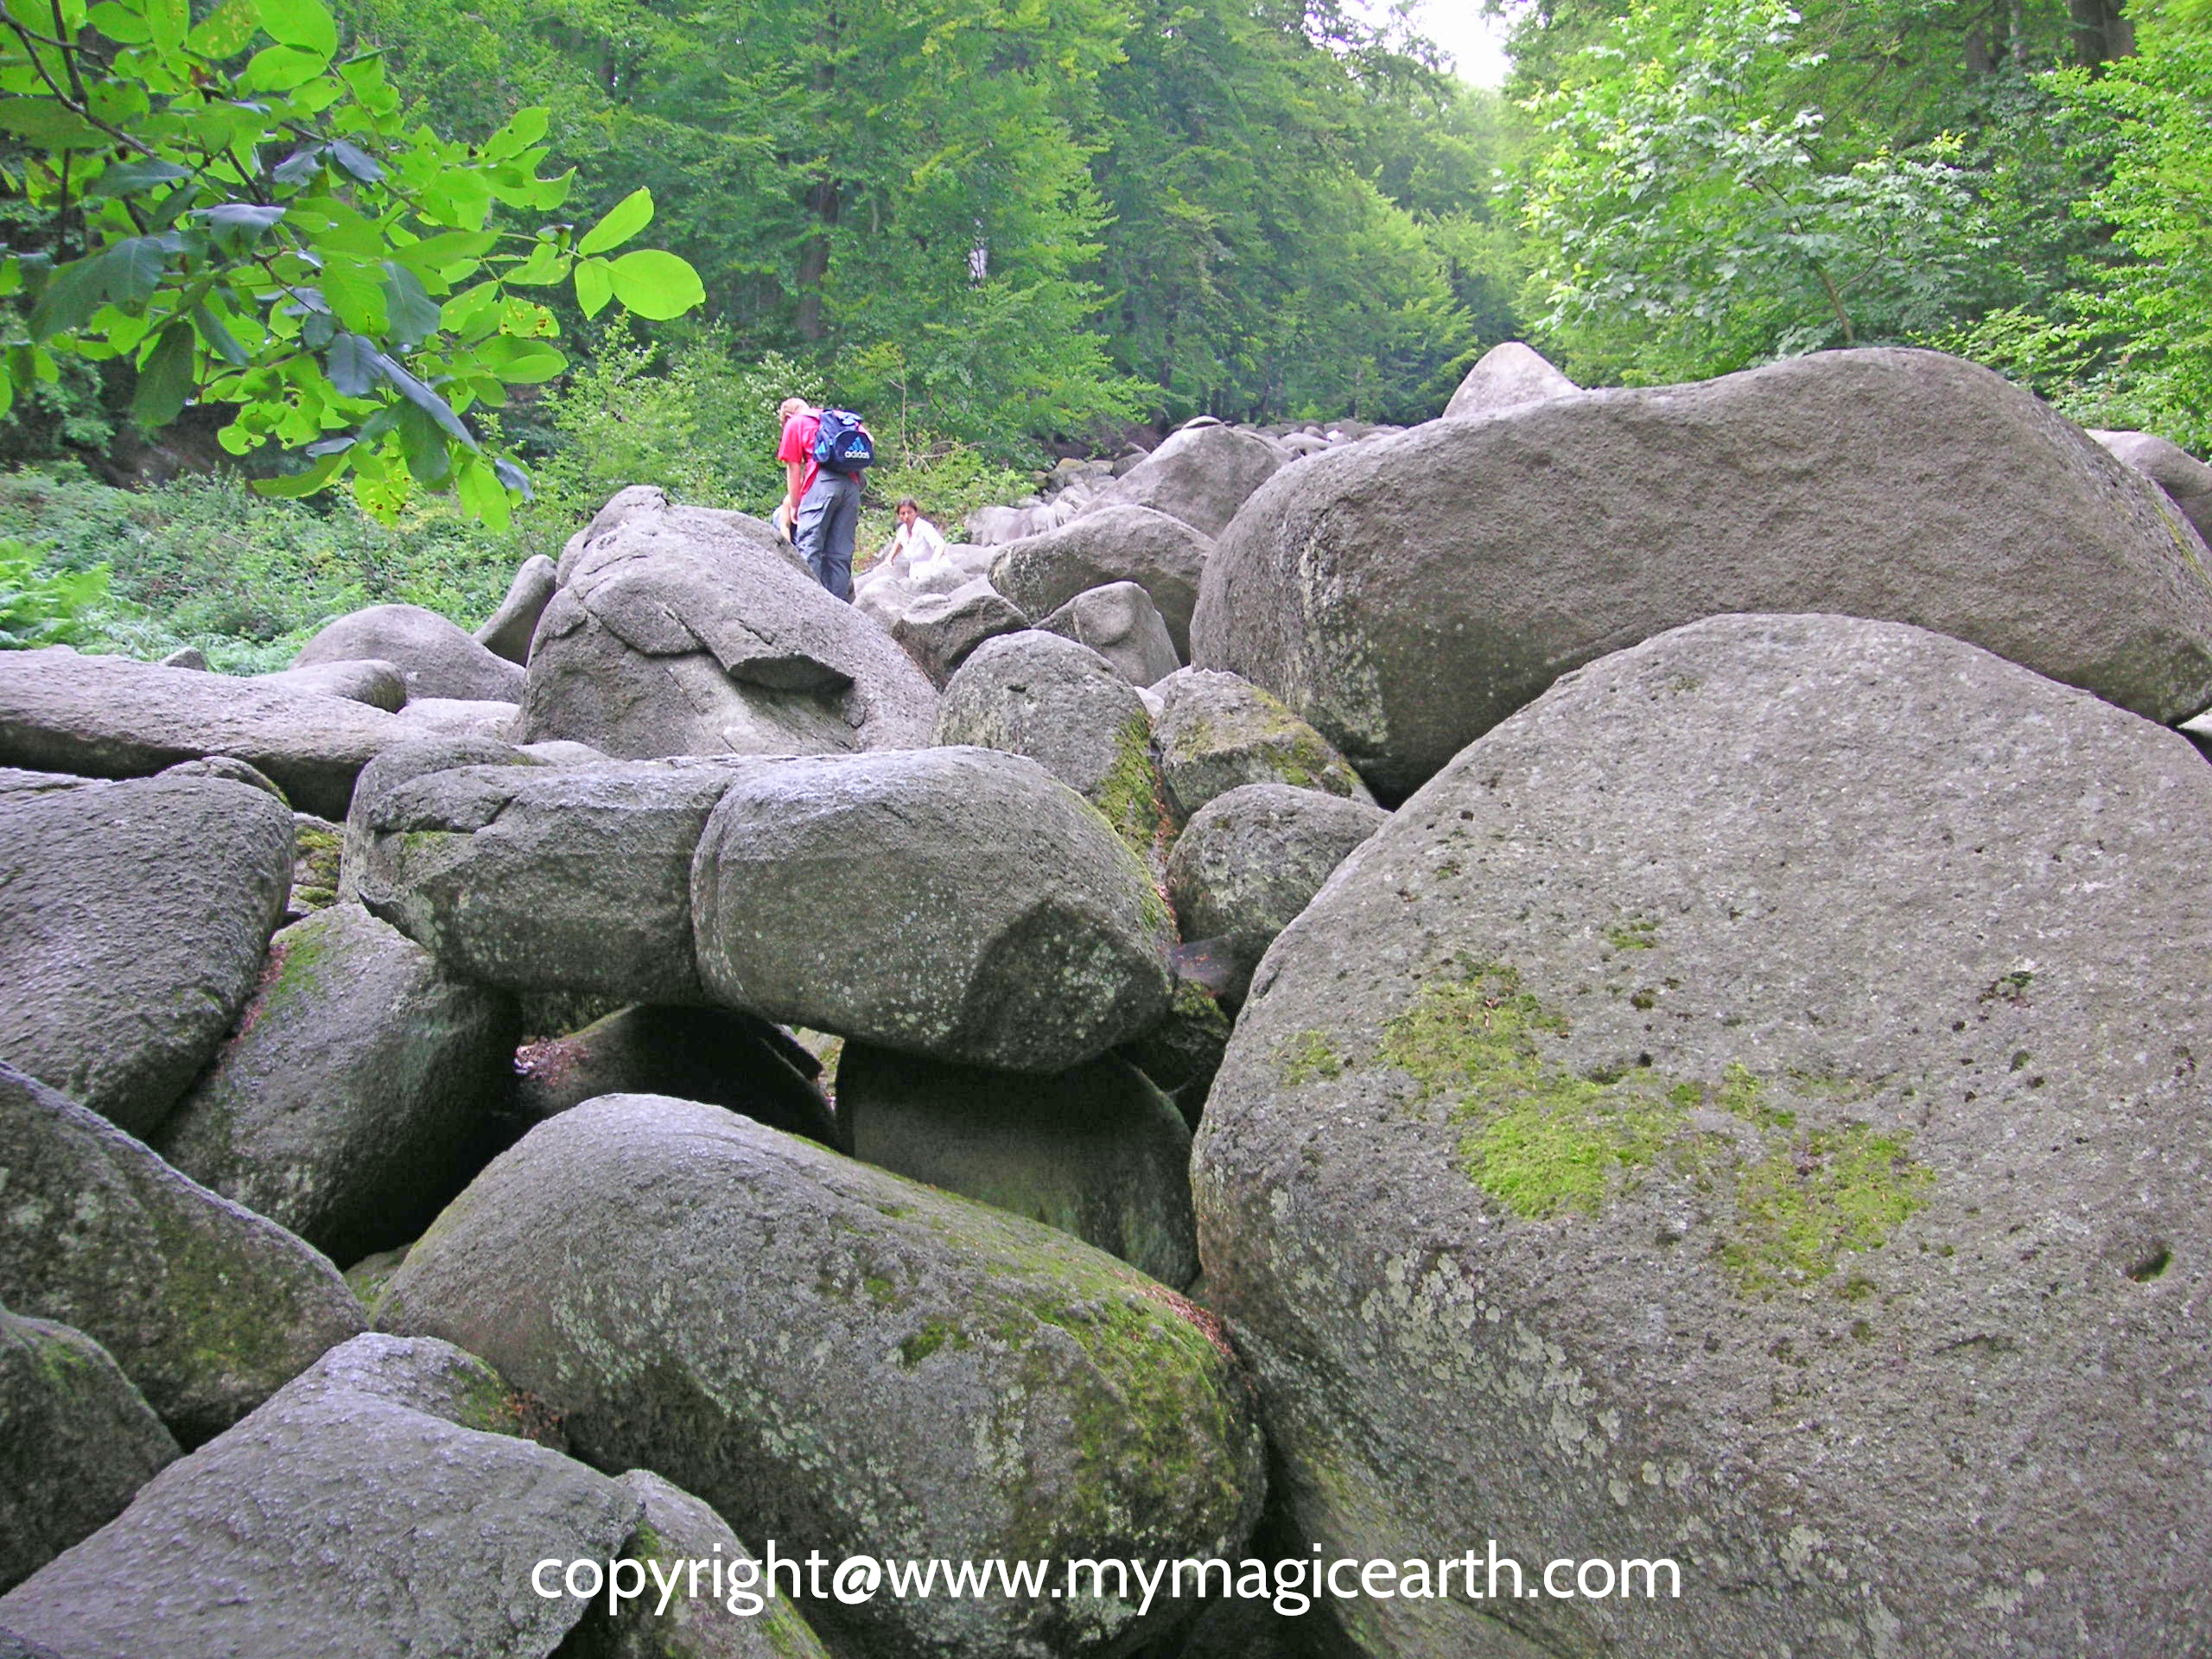 Felsenmeer (giant rocks in Odenwald, Germany)